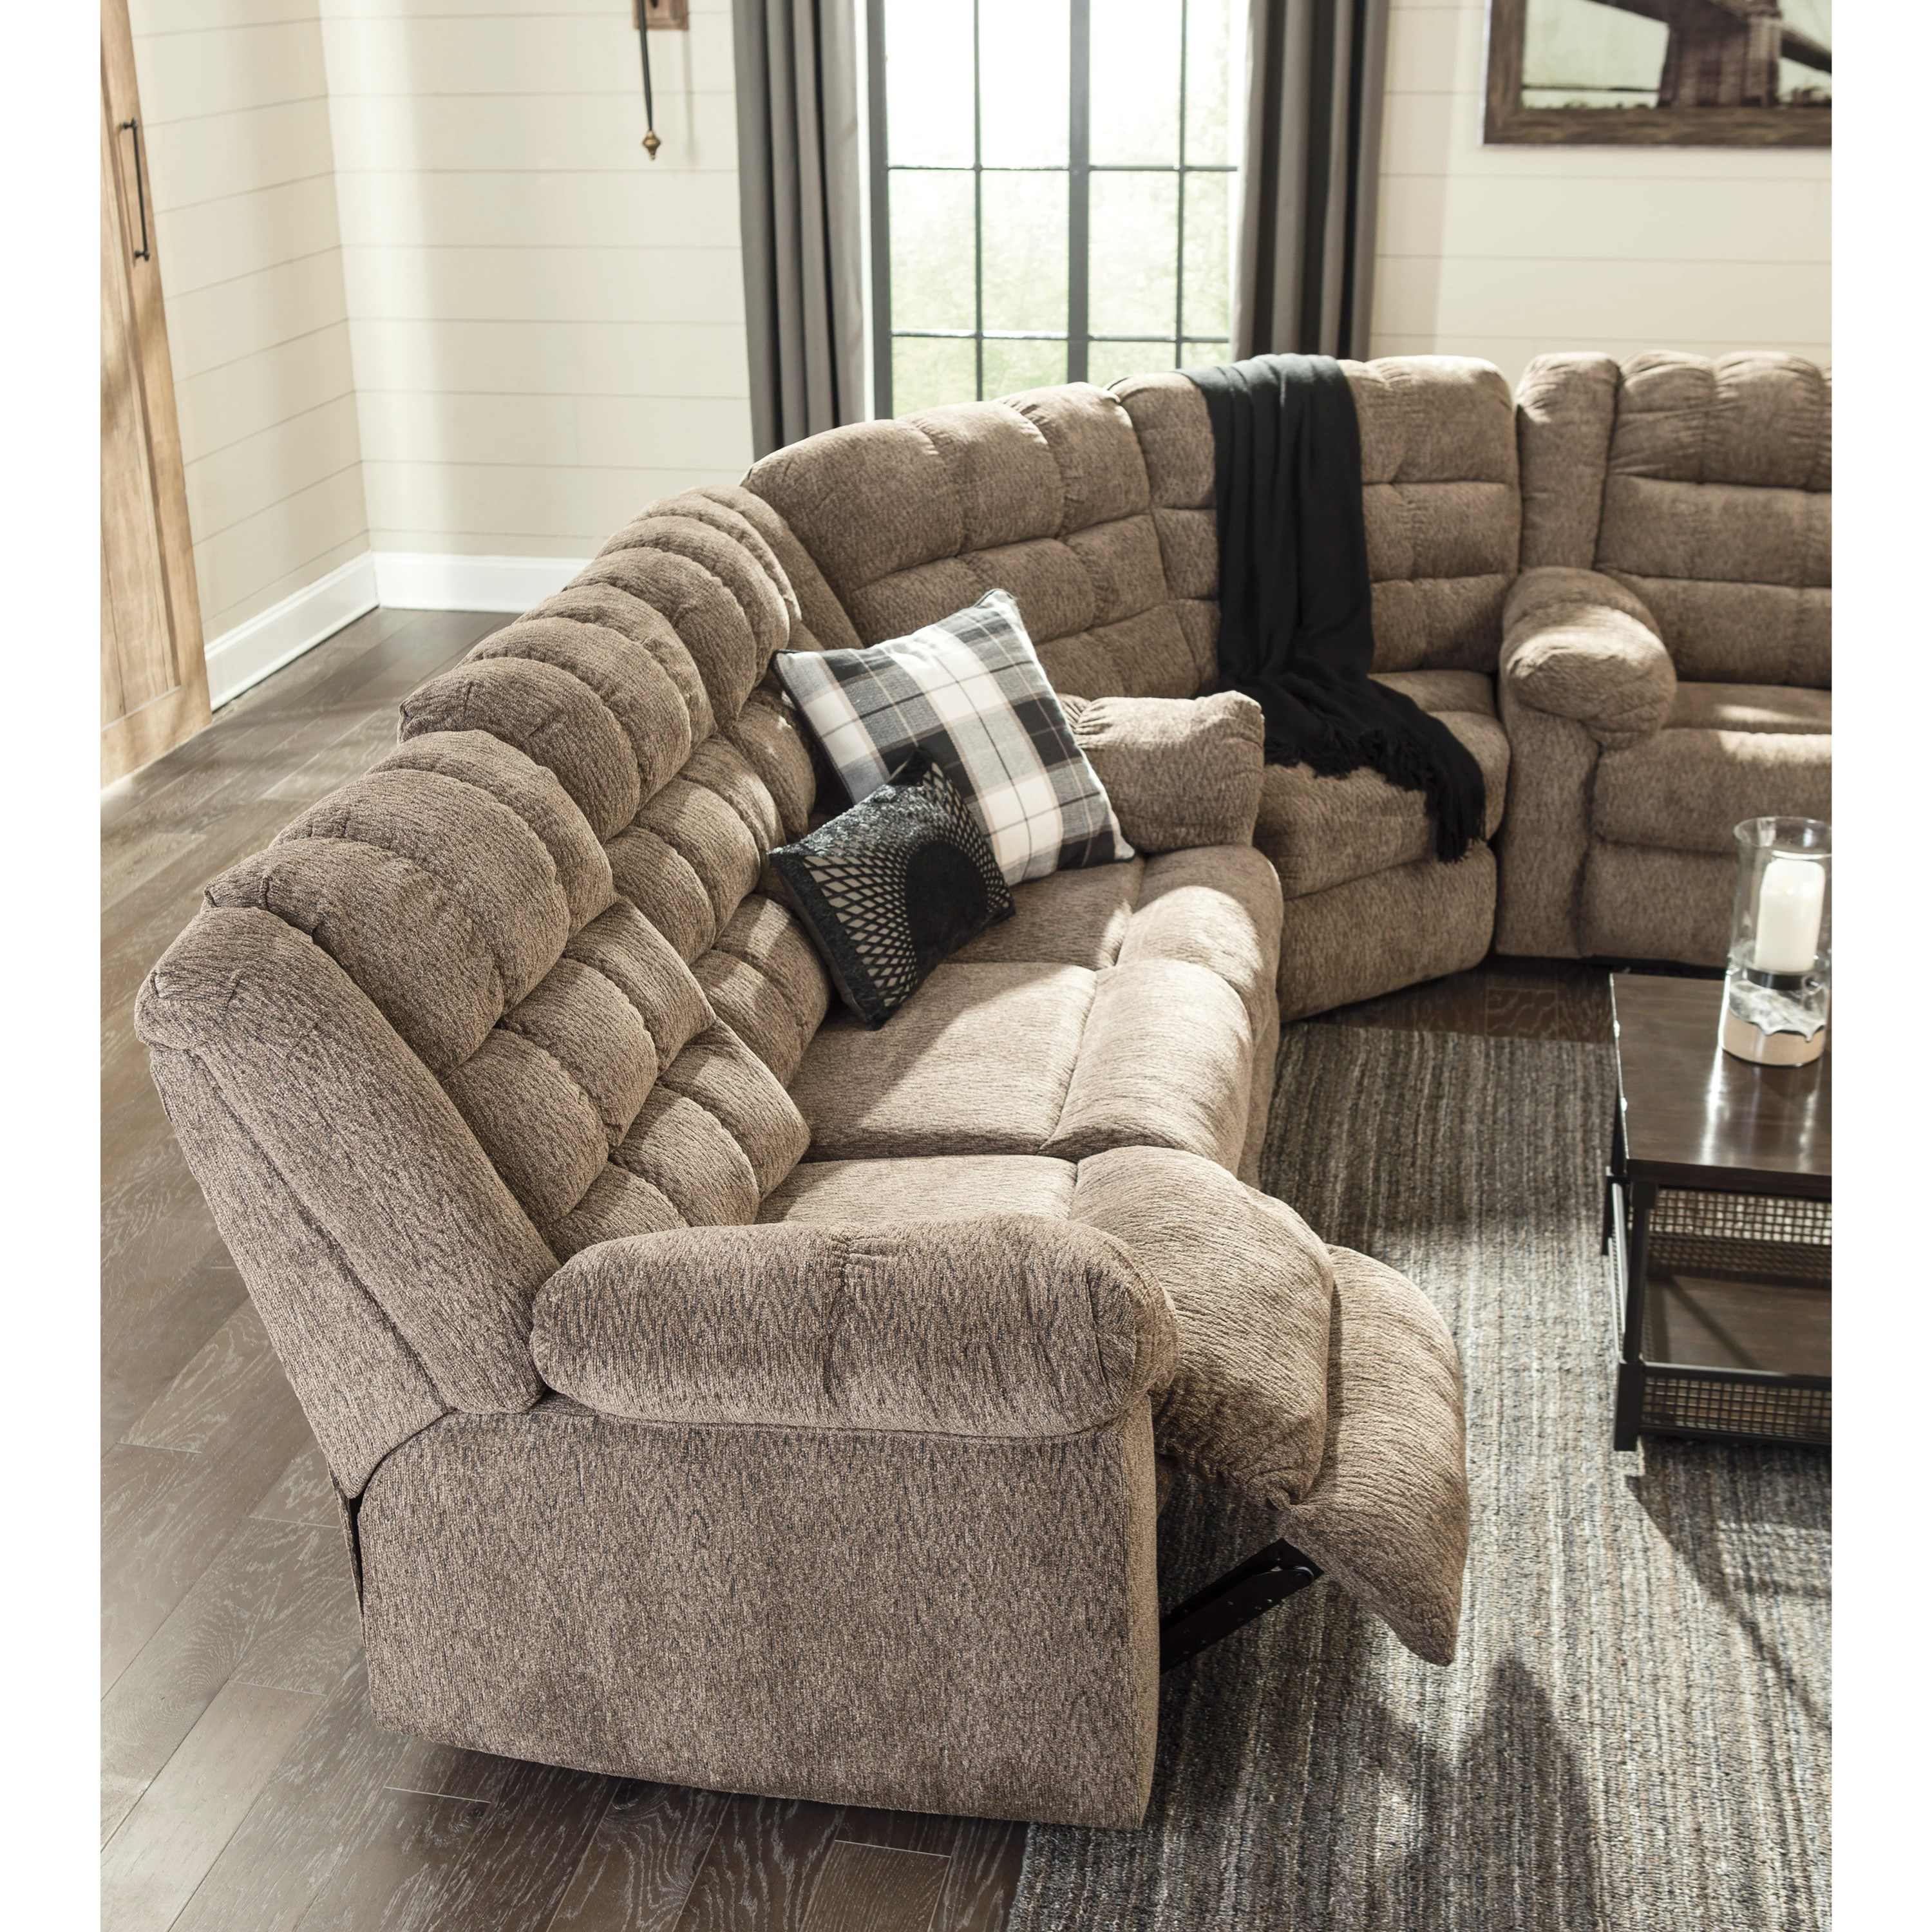 Ashley Furniture Online Catalog: Signature Design By Ashley Workhorse 3-Piece Sectional